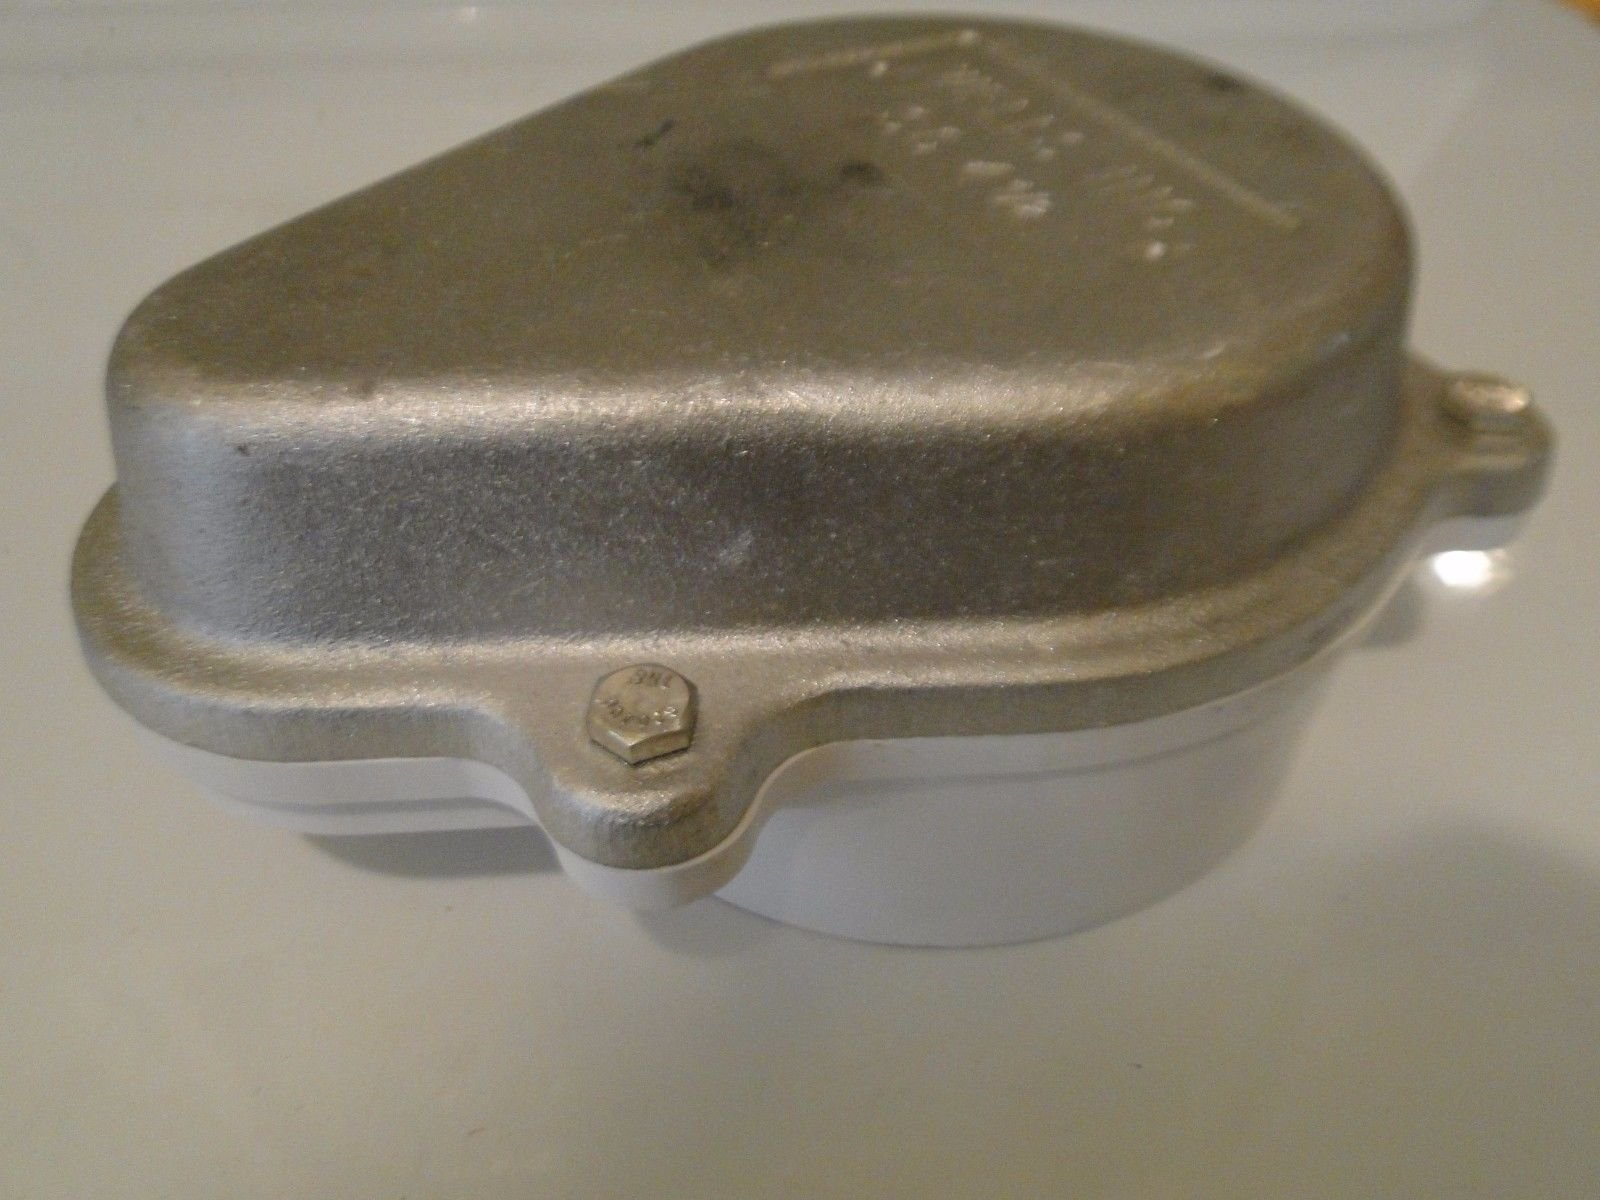 WELL CAP 4.5 4 1/2'' WATER TIGHT PVC / ALUMINUM / ABS VENTED CAMPBELL SC-4 1/2